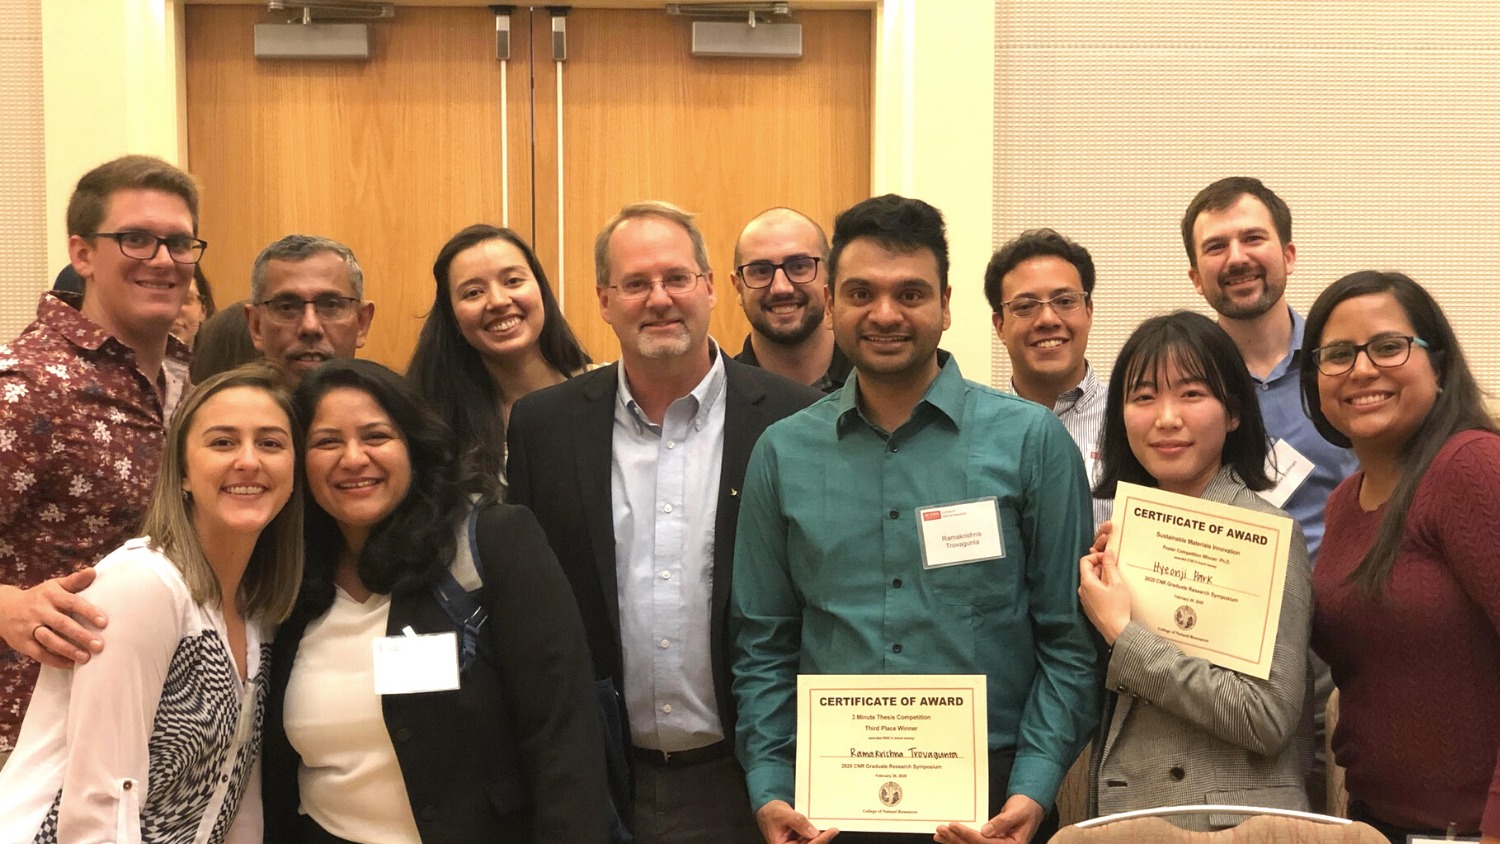 Group Photo - 2020 Graduate Research Symposium: Forest Biomaterials - Forest Biomaterials NC State University